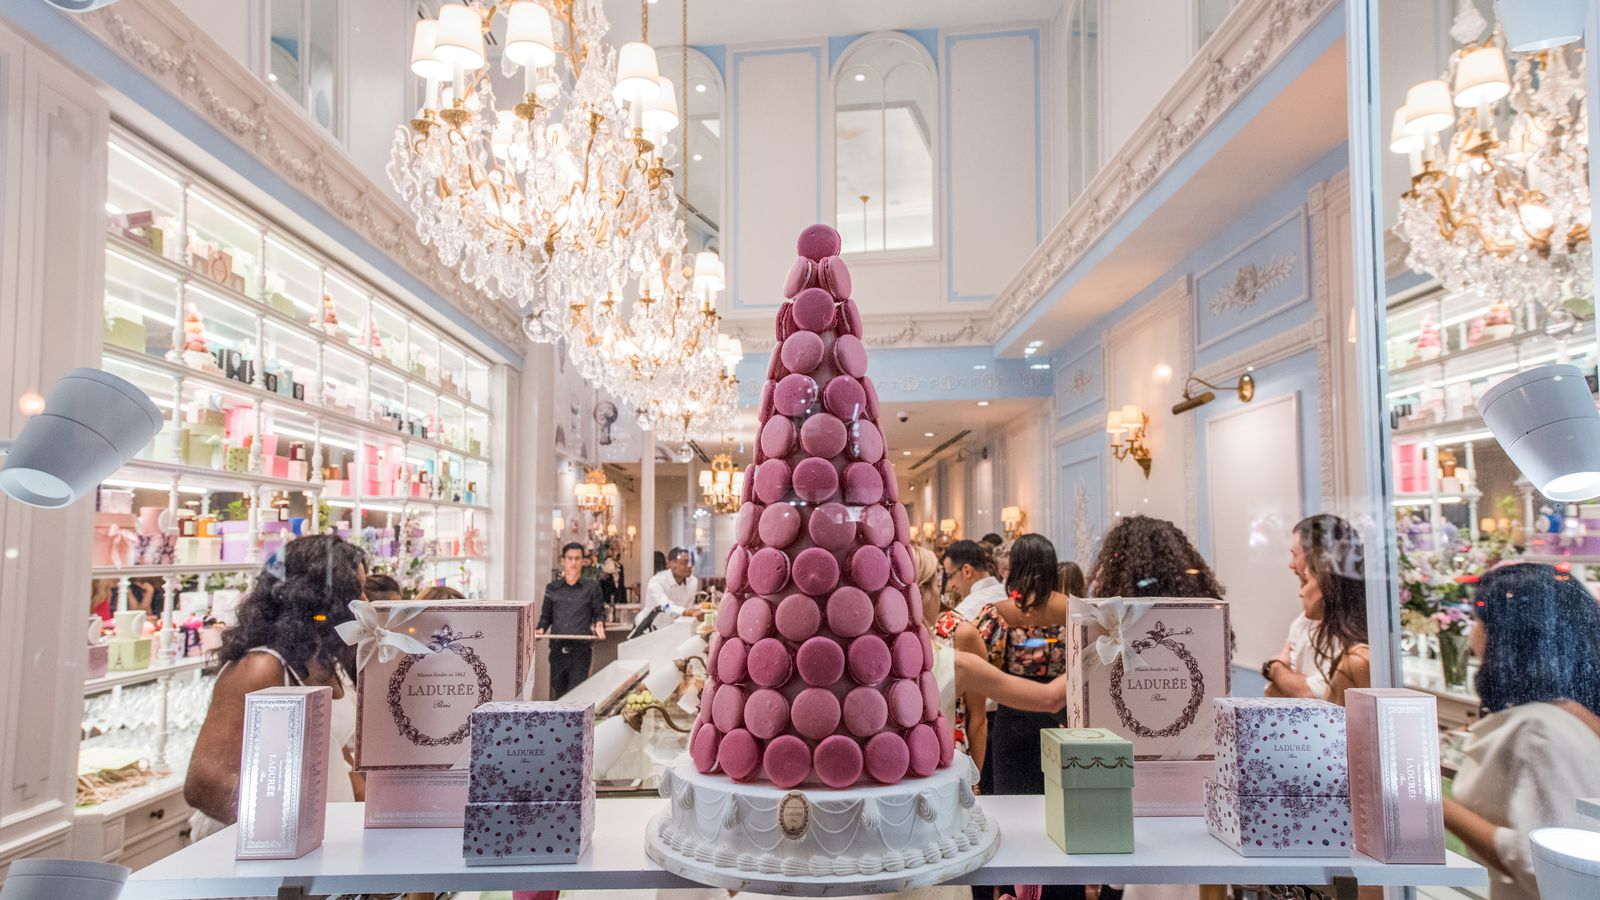 Ladur e brings more than macarons to d c eater dc - Interior design jobs washington state ...